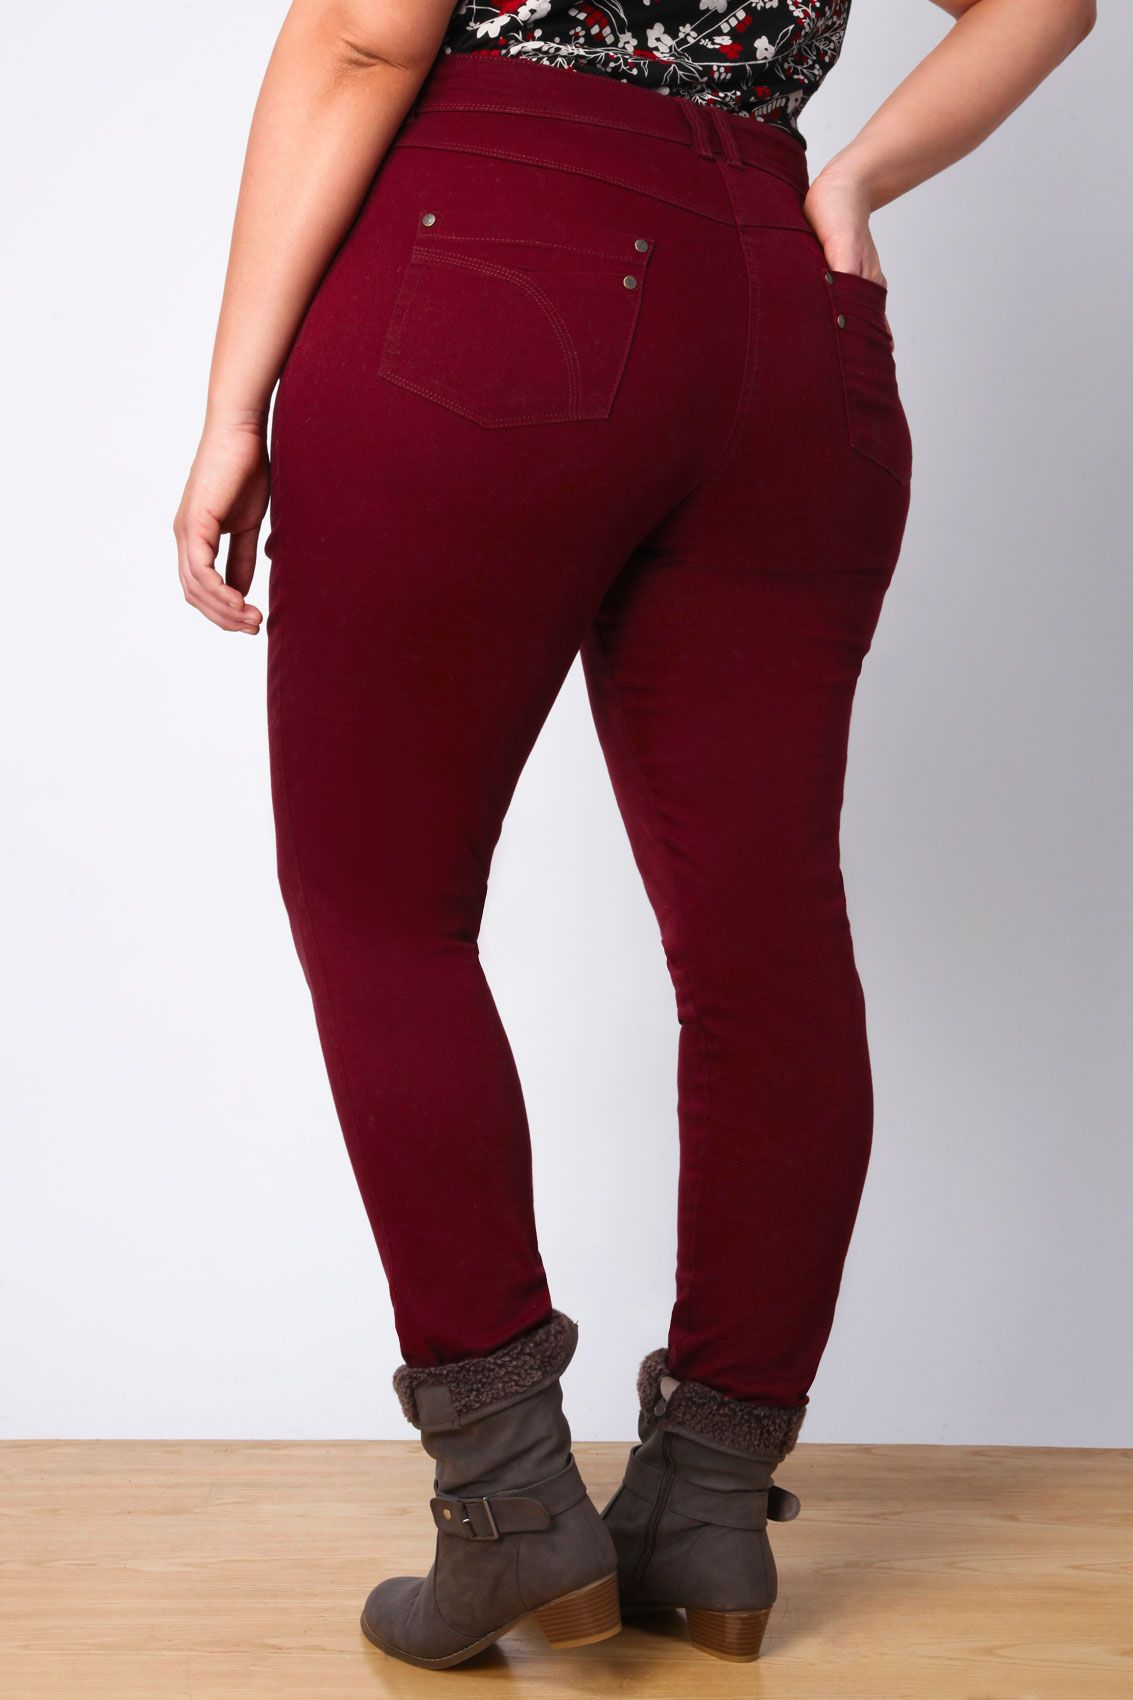 Available to buy here http//www.yoursclothing.co.uk/P